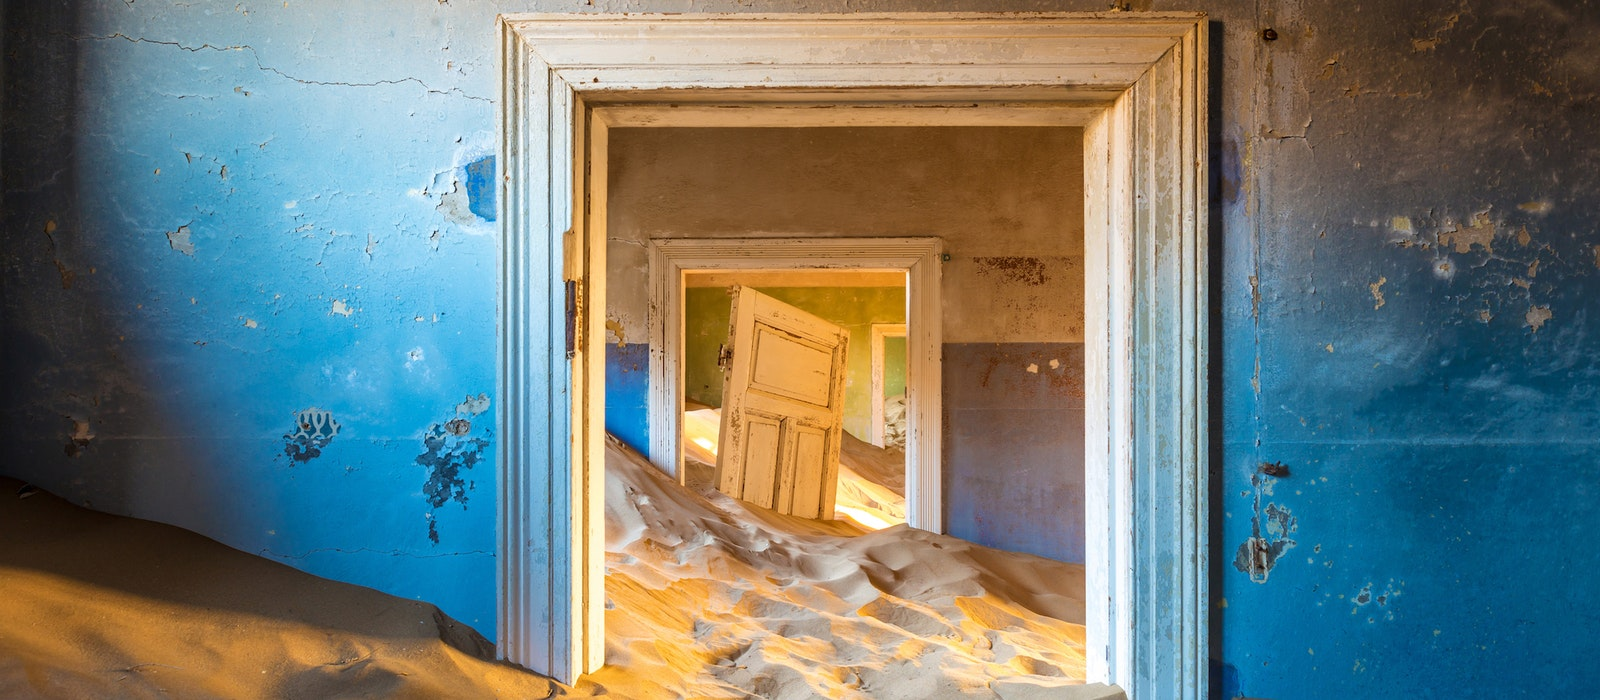 The town of Kolmanskop in Namibia was founded in the early 1900s after diamonds were found in the Namib Desert, but it was eventually abandoned and all but swallowed up by sand.